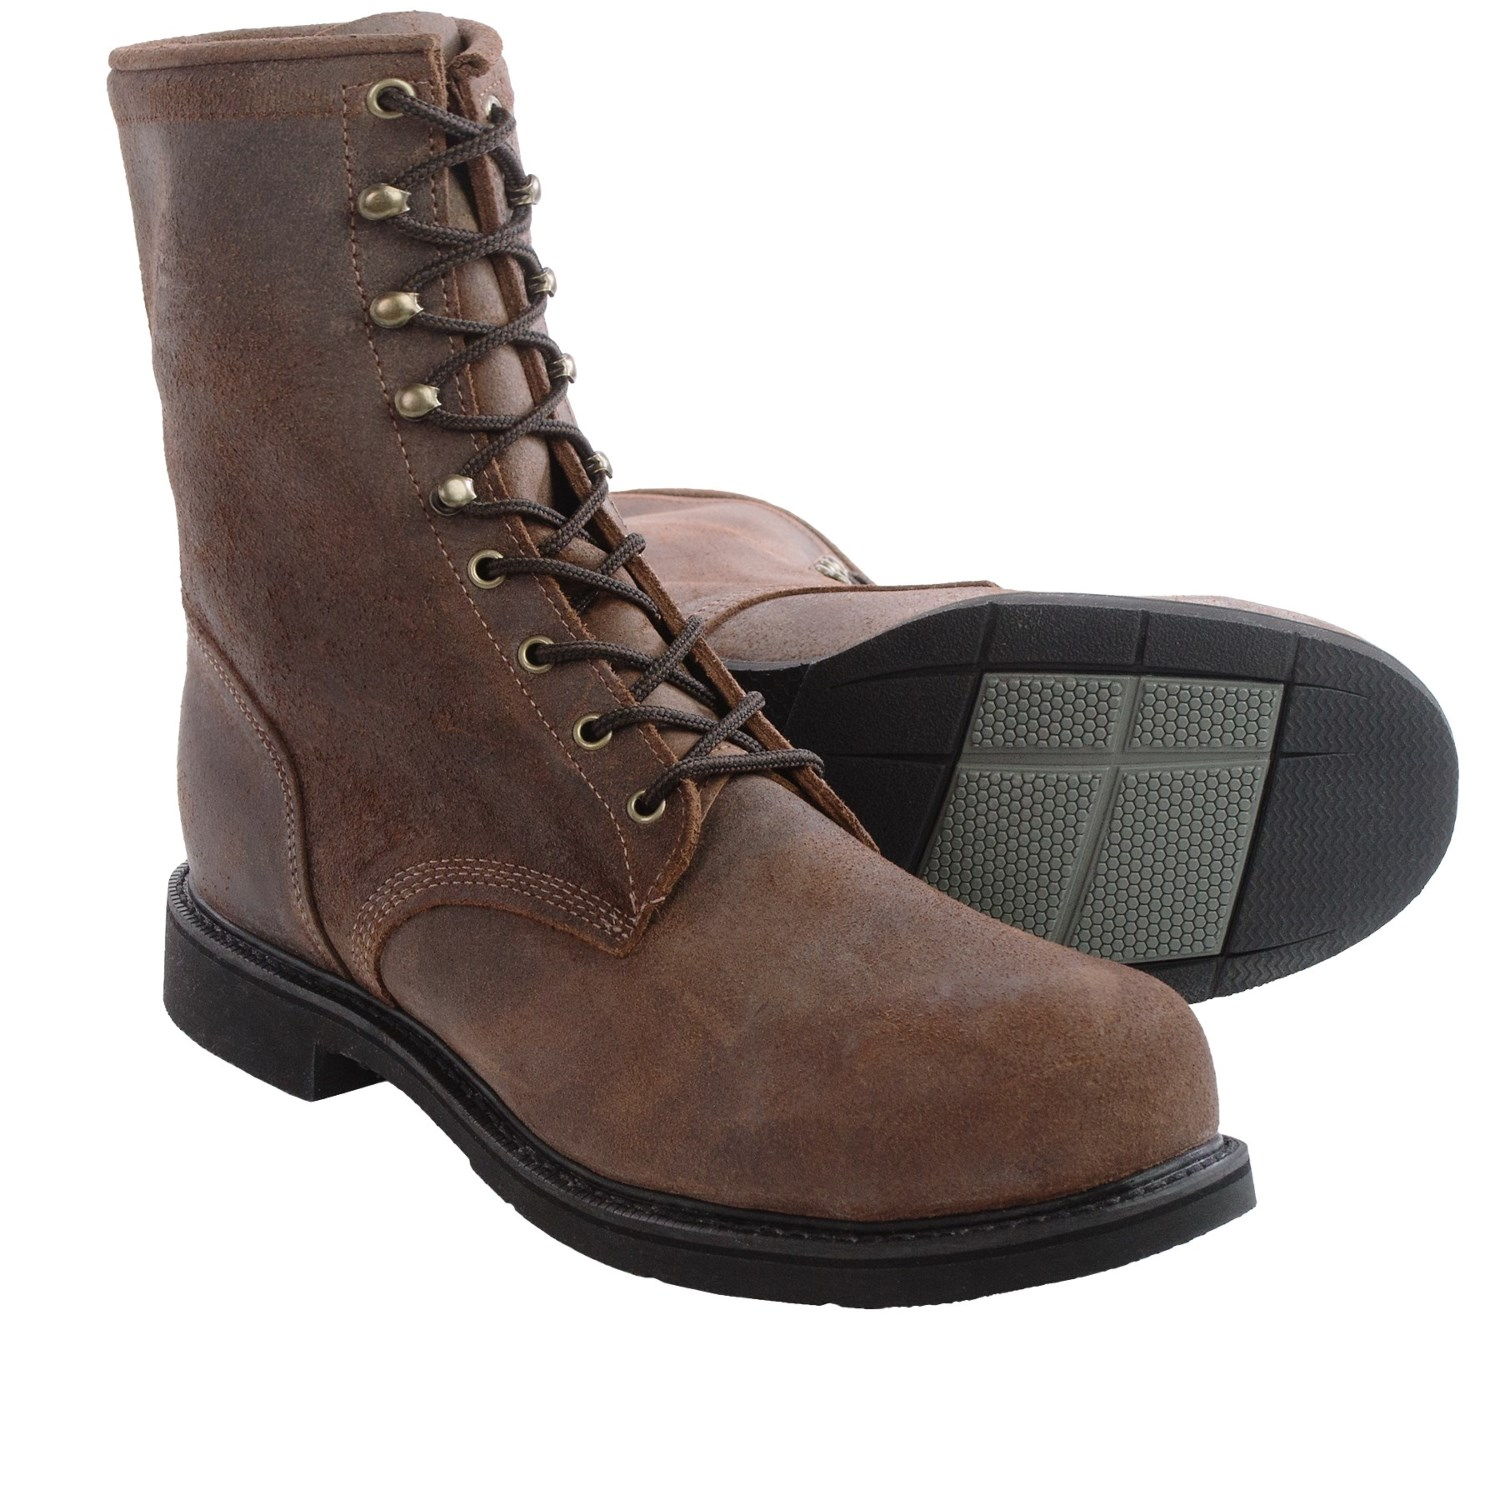 Justin Boots Dark Mountain Leather Work Boots (For Men) - Save 53%